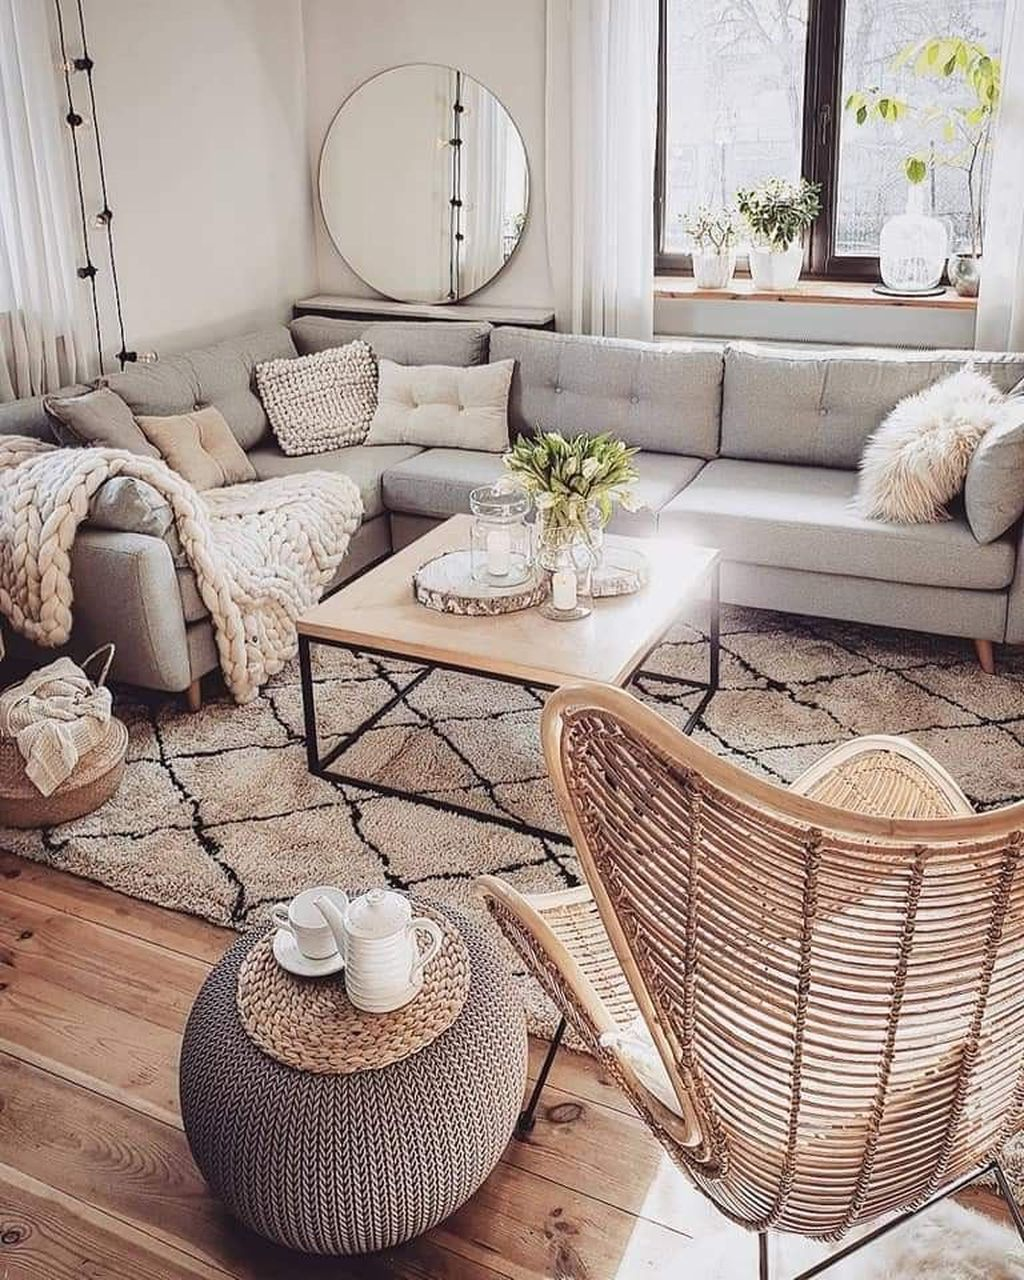 Stunning Neutral Decor Ideas For Your Living Room 05